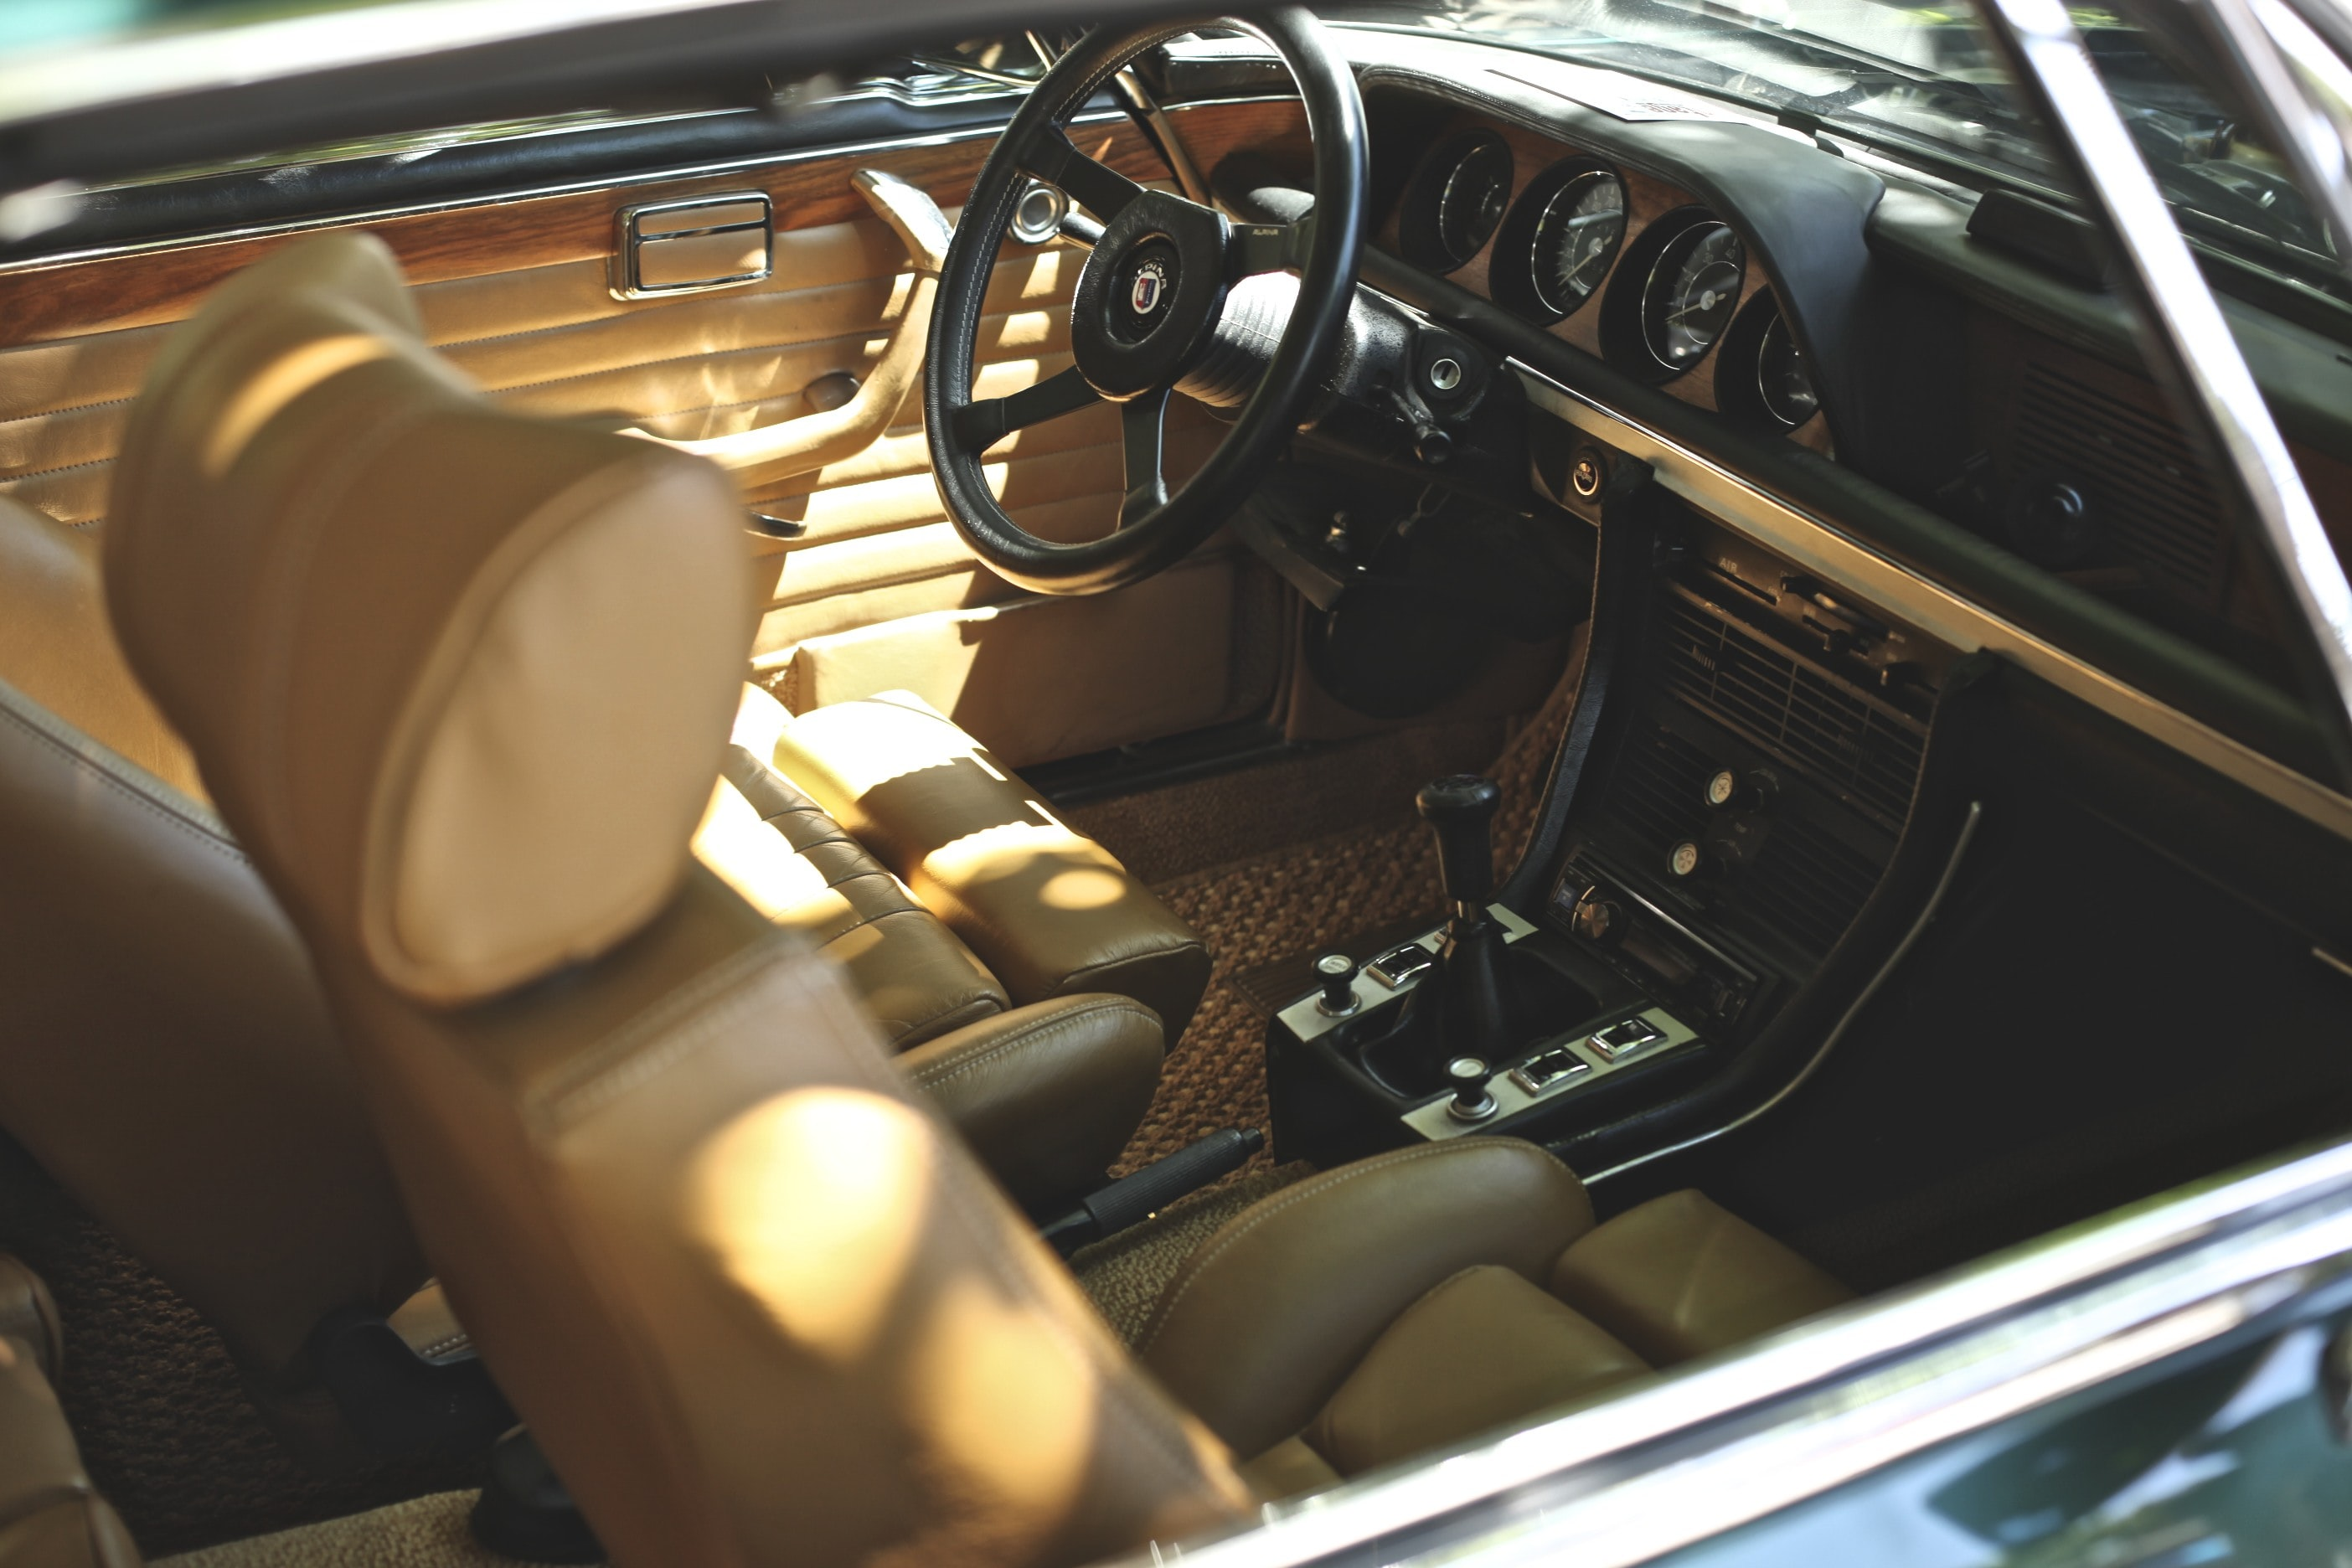 Interior shot of a vintage car with sunlight seeping in.